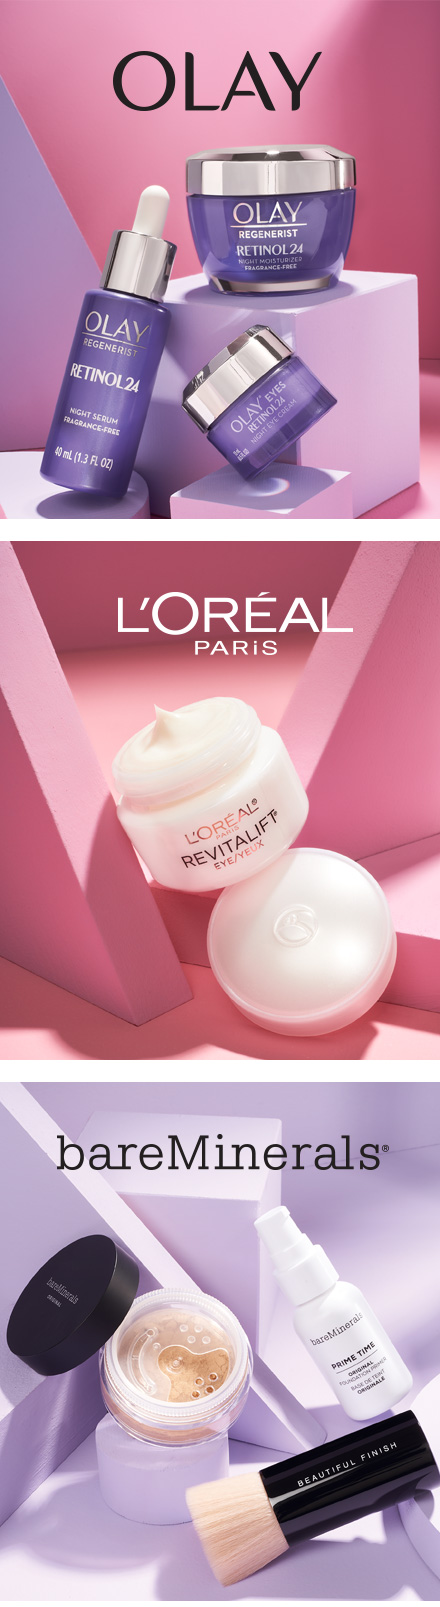 Shop Olay, L'Oreal and bareMinerals